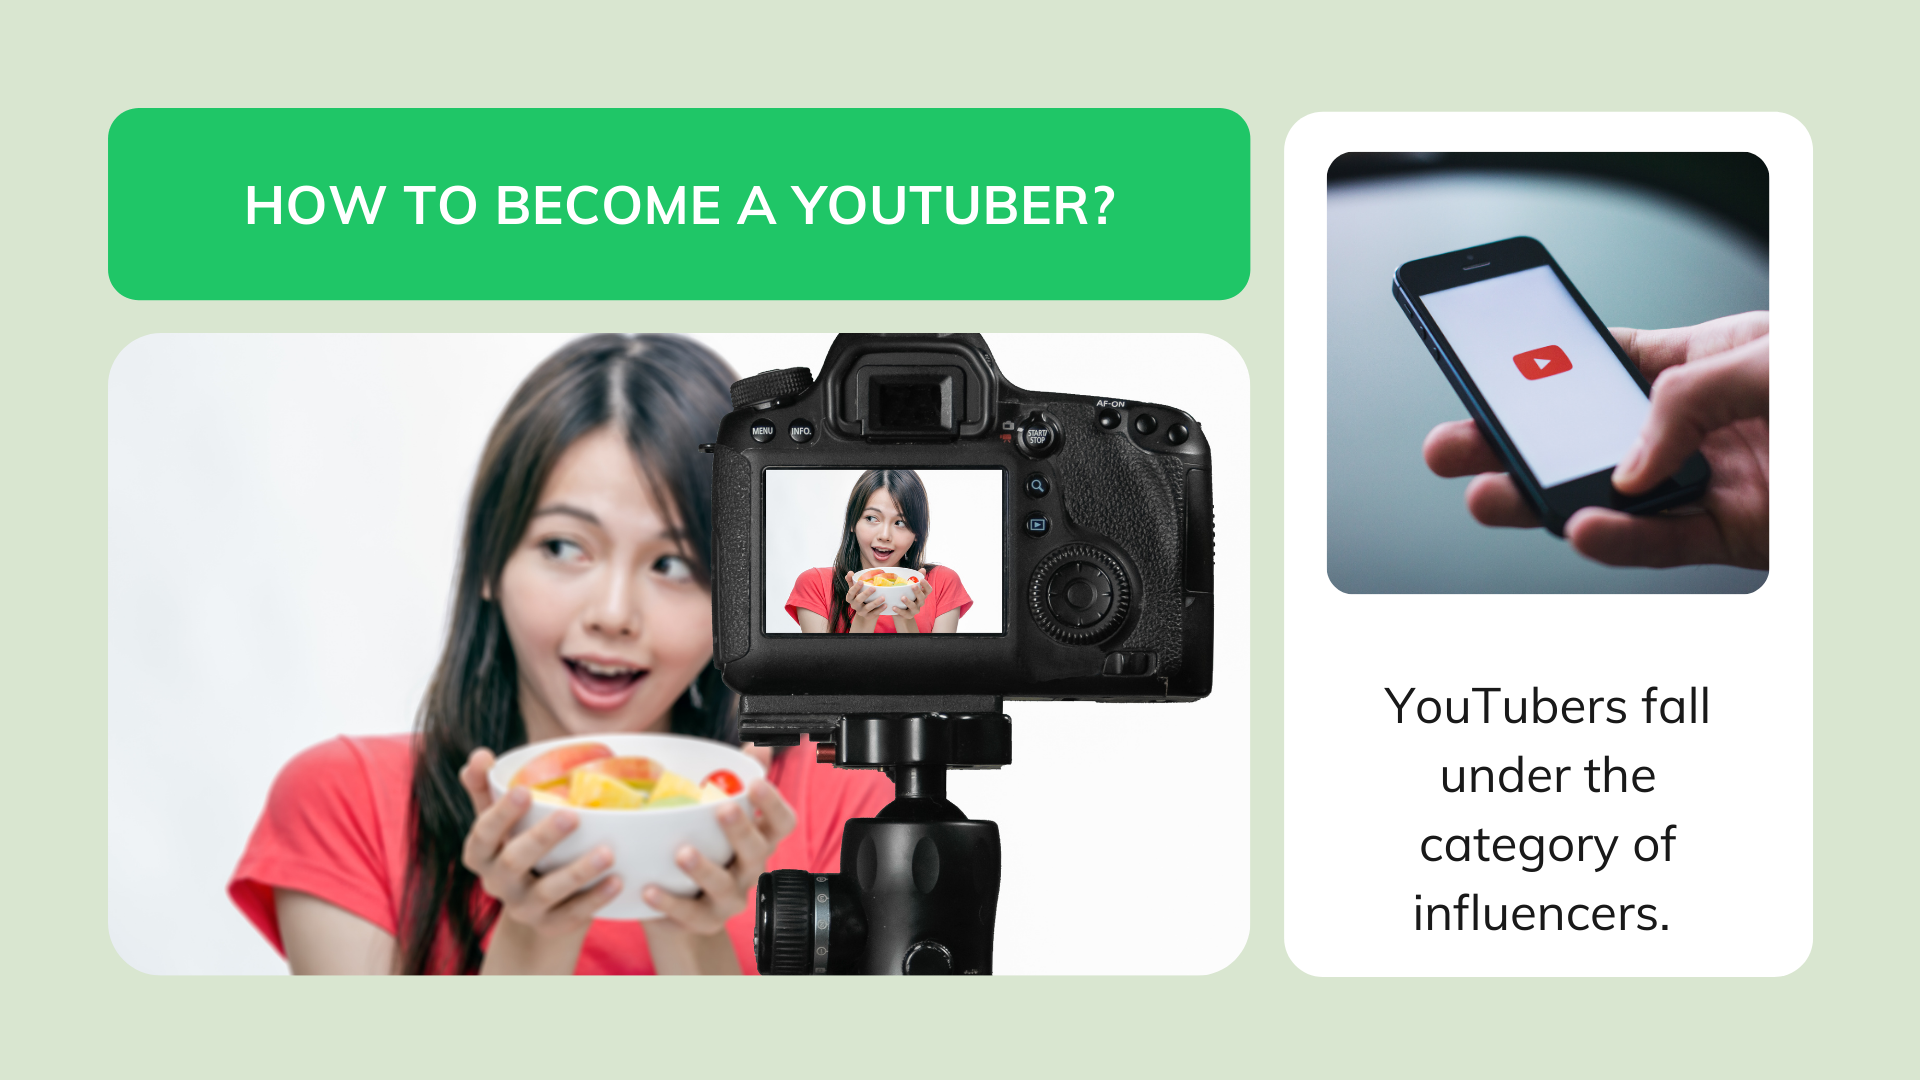 How to become a YouTuber?